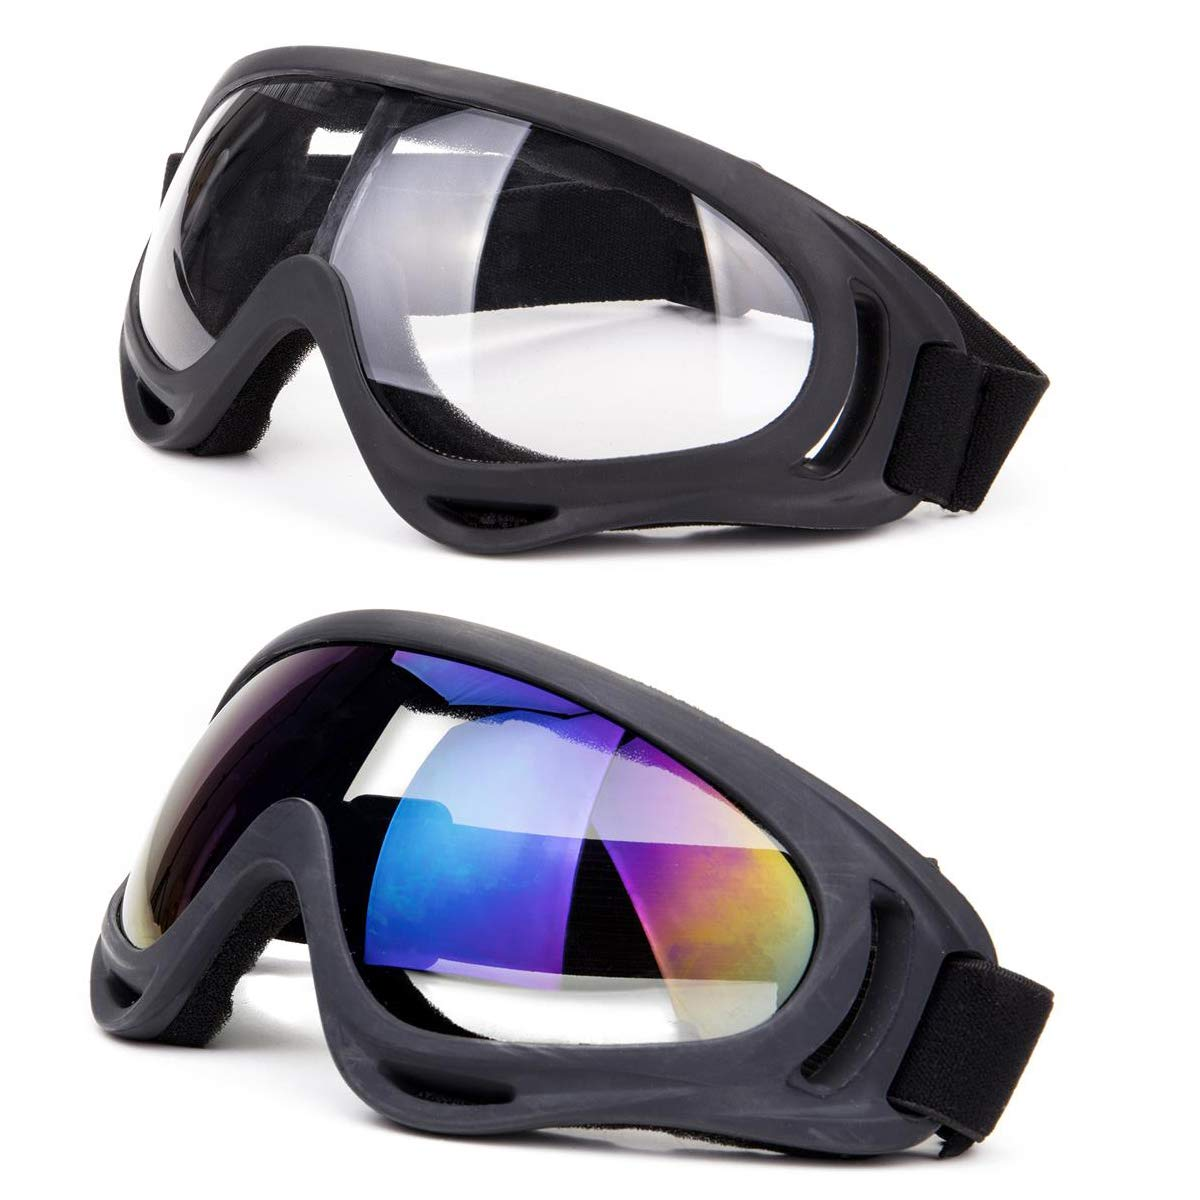 DODOING Ski Goggles, 2-Pack Snowboard Goggles with UV 400 Protection Windproof and Dustproof for Skate Motorcycle Bicycle Glasses for Kids, Boys & Girls, Youth, Men & Women by DODOING